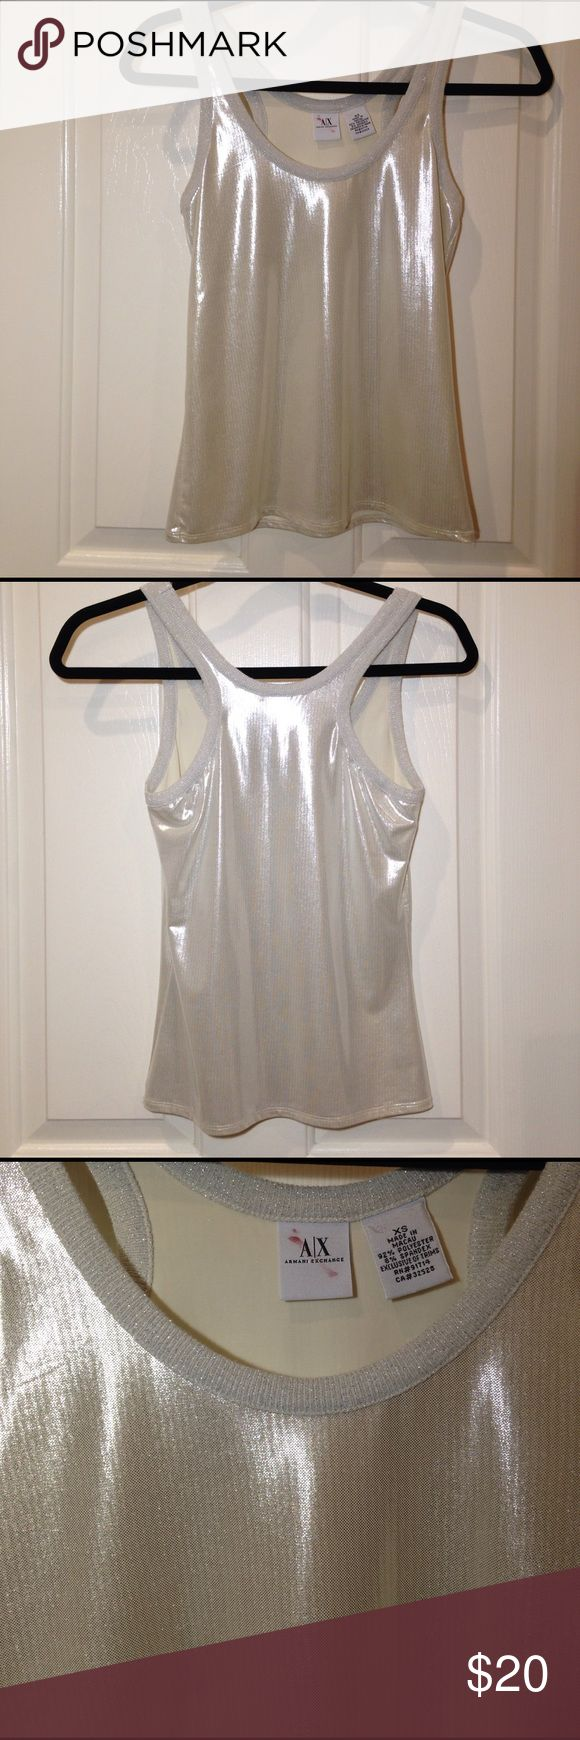 ARMANI EXCHANGE TOP SILVER XS ARMANI EXCHANGE shimmering silver racerback tank top. Light and soft fabric. Silver shimmers in the light. Great for parties and ladies lunches 🎀💄💅🏼 Armani Exchange Tops Tank Tops